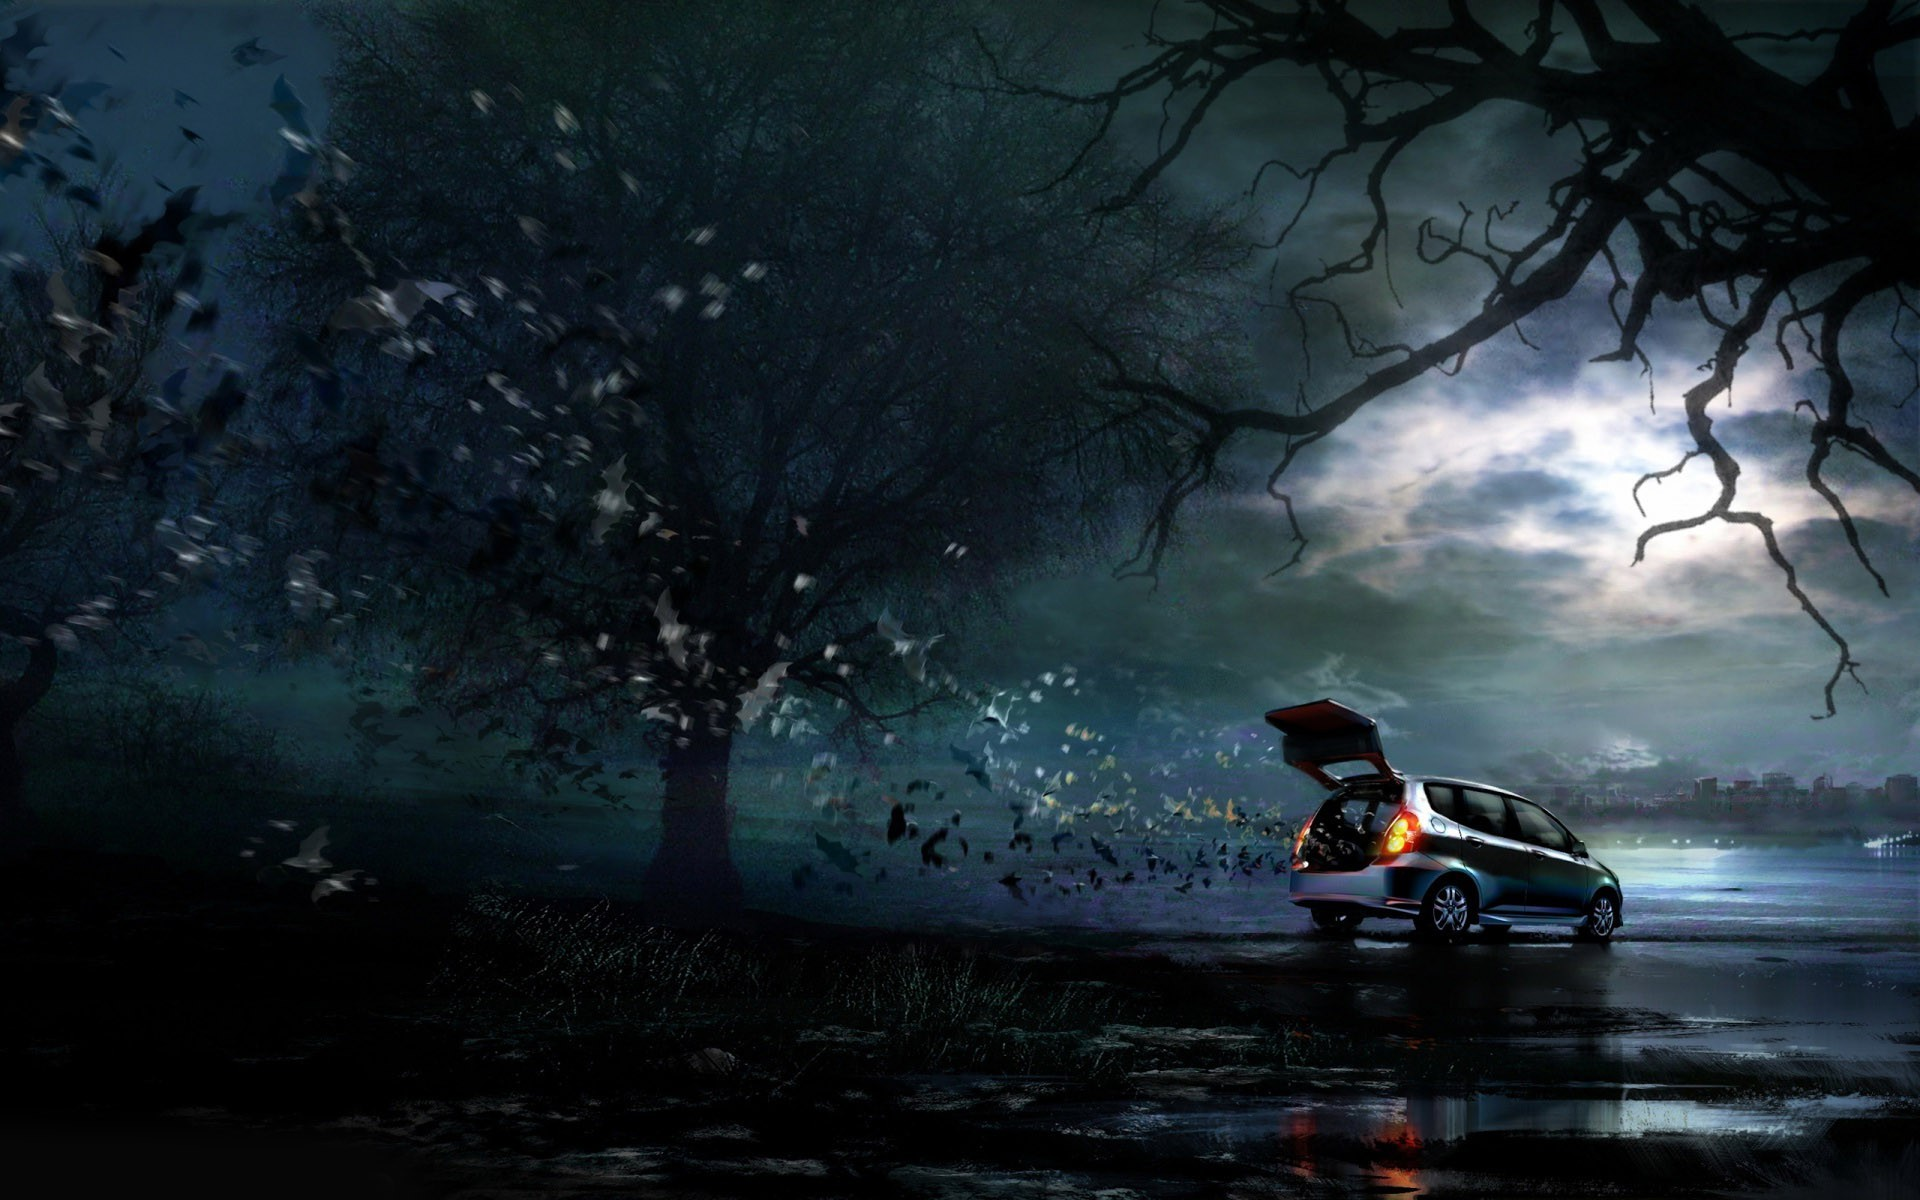 Bats escaping from a car wallpaper 10849 1920x1200